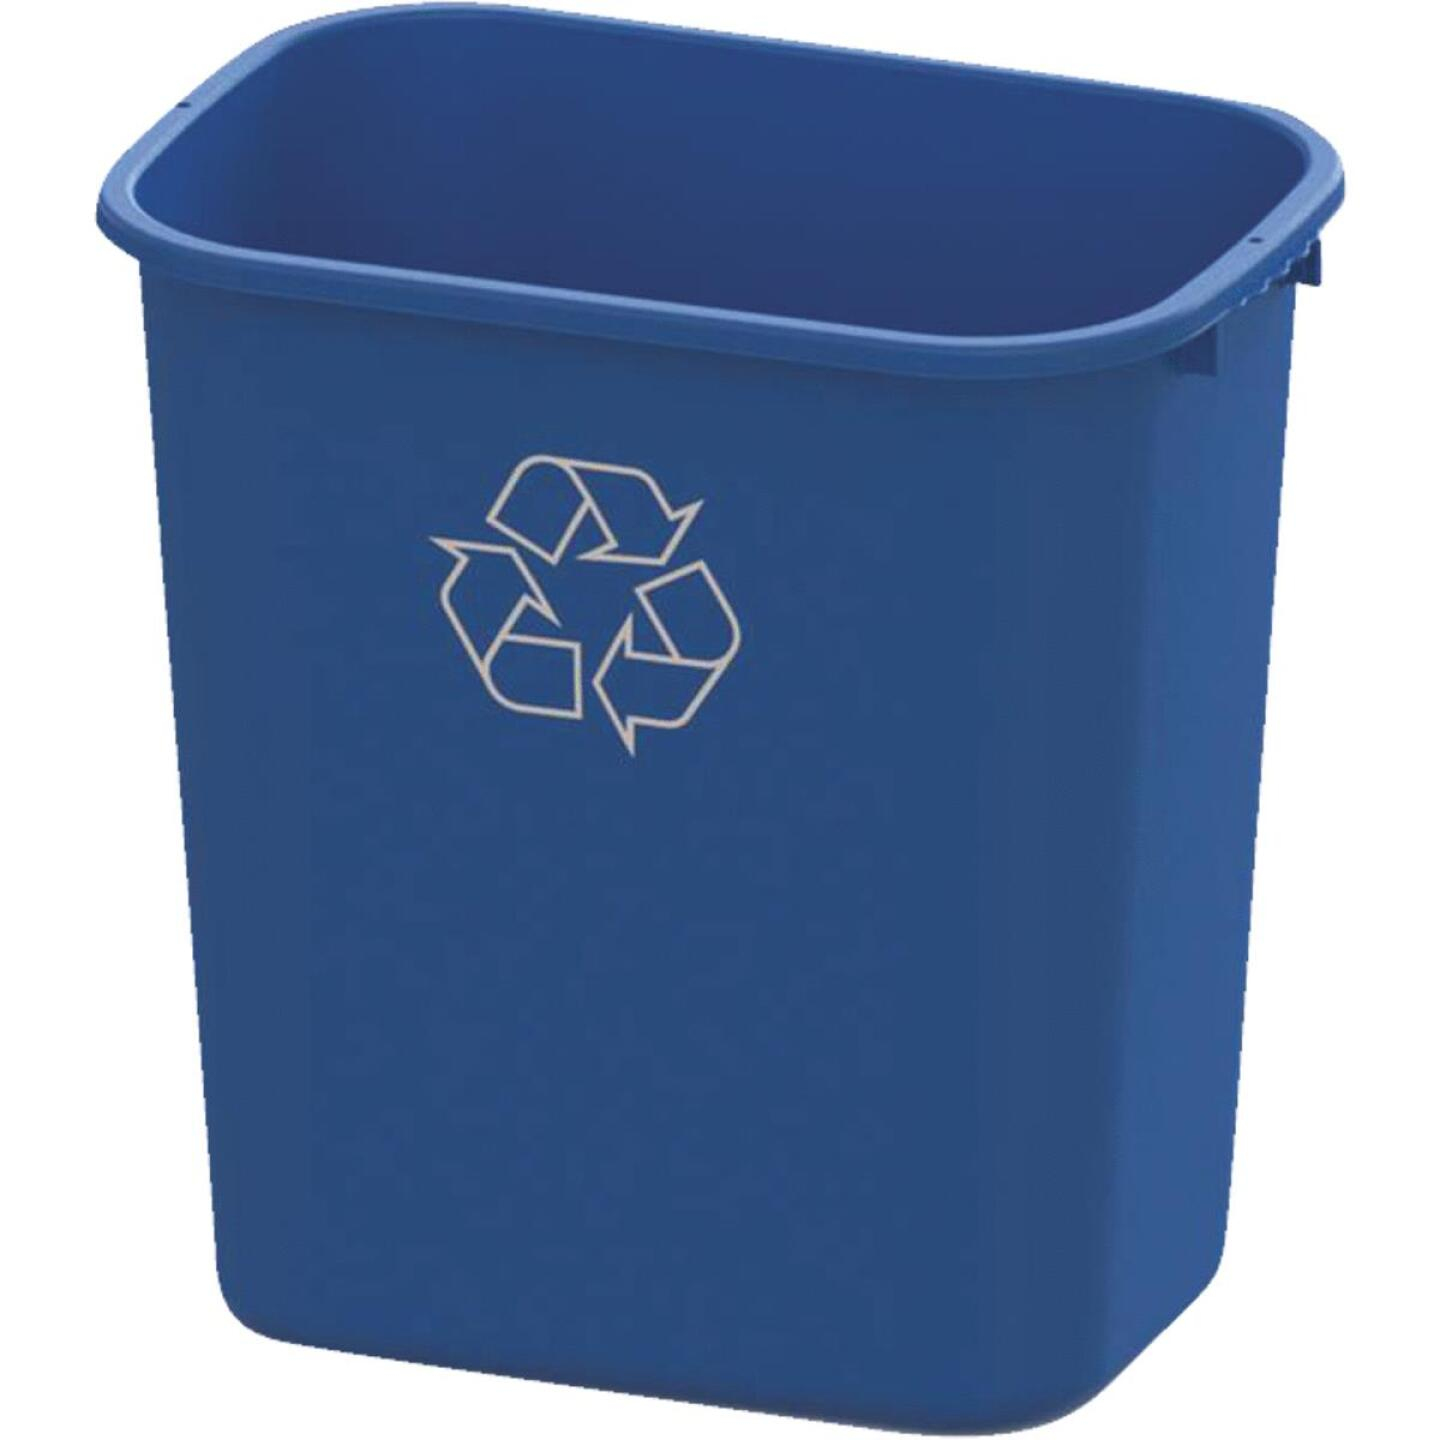 Impact 28 Qt. Blue Plastic Recycle Wastebasket Image 1